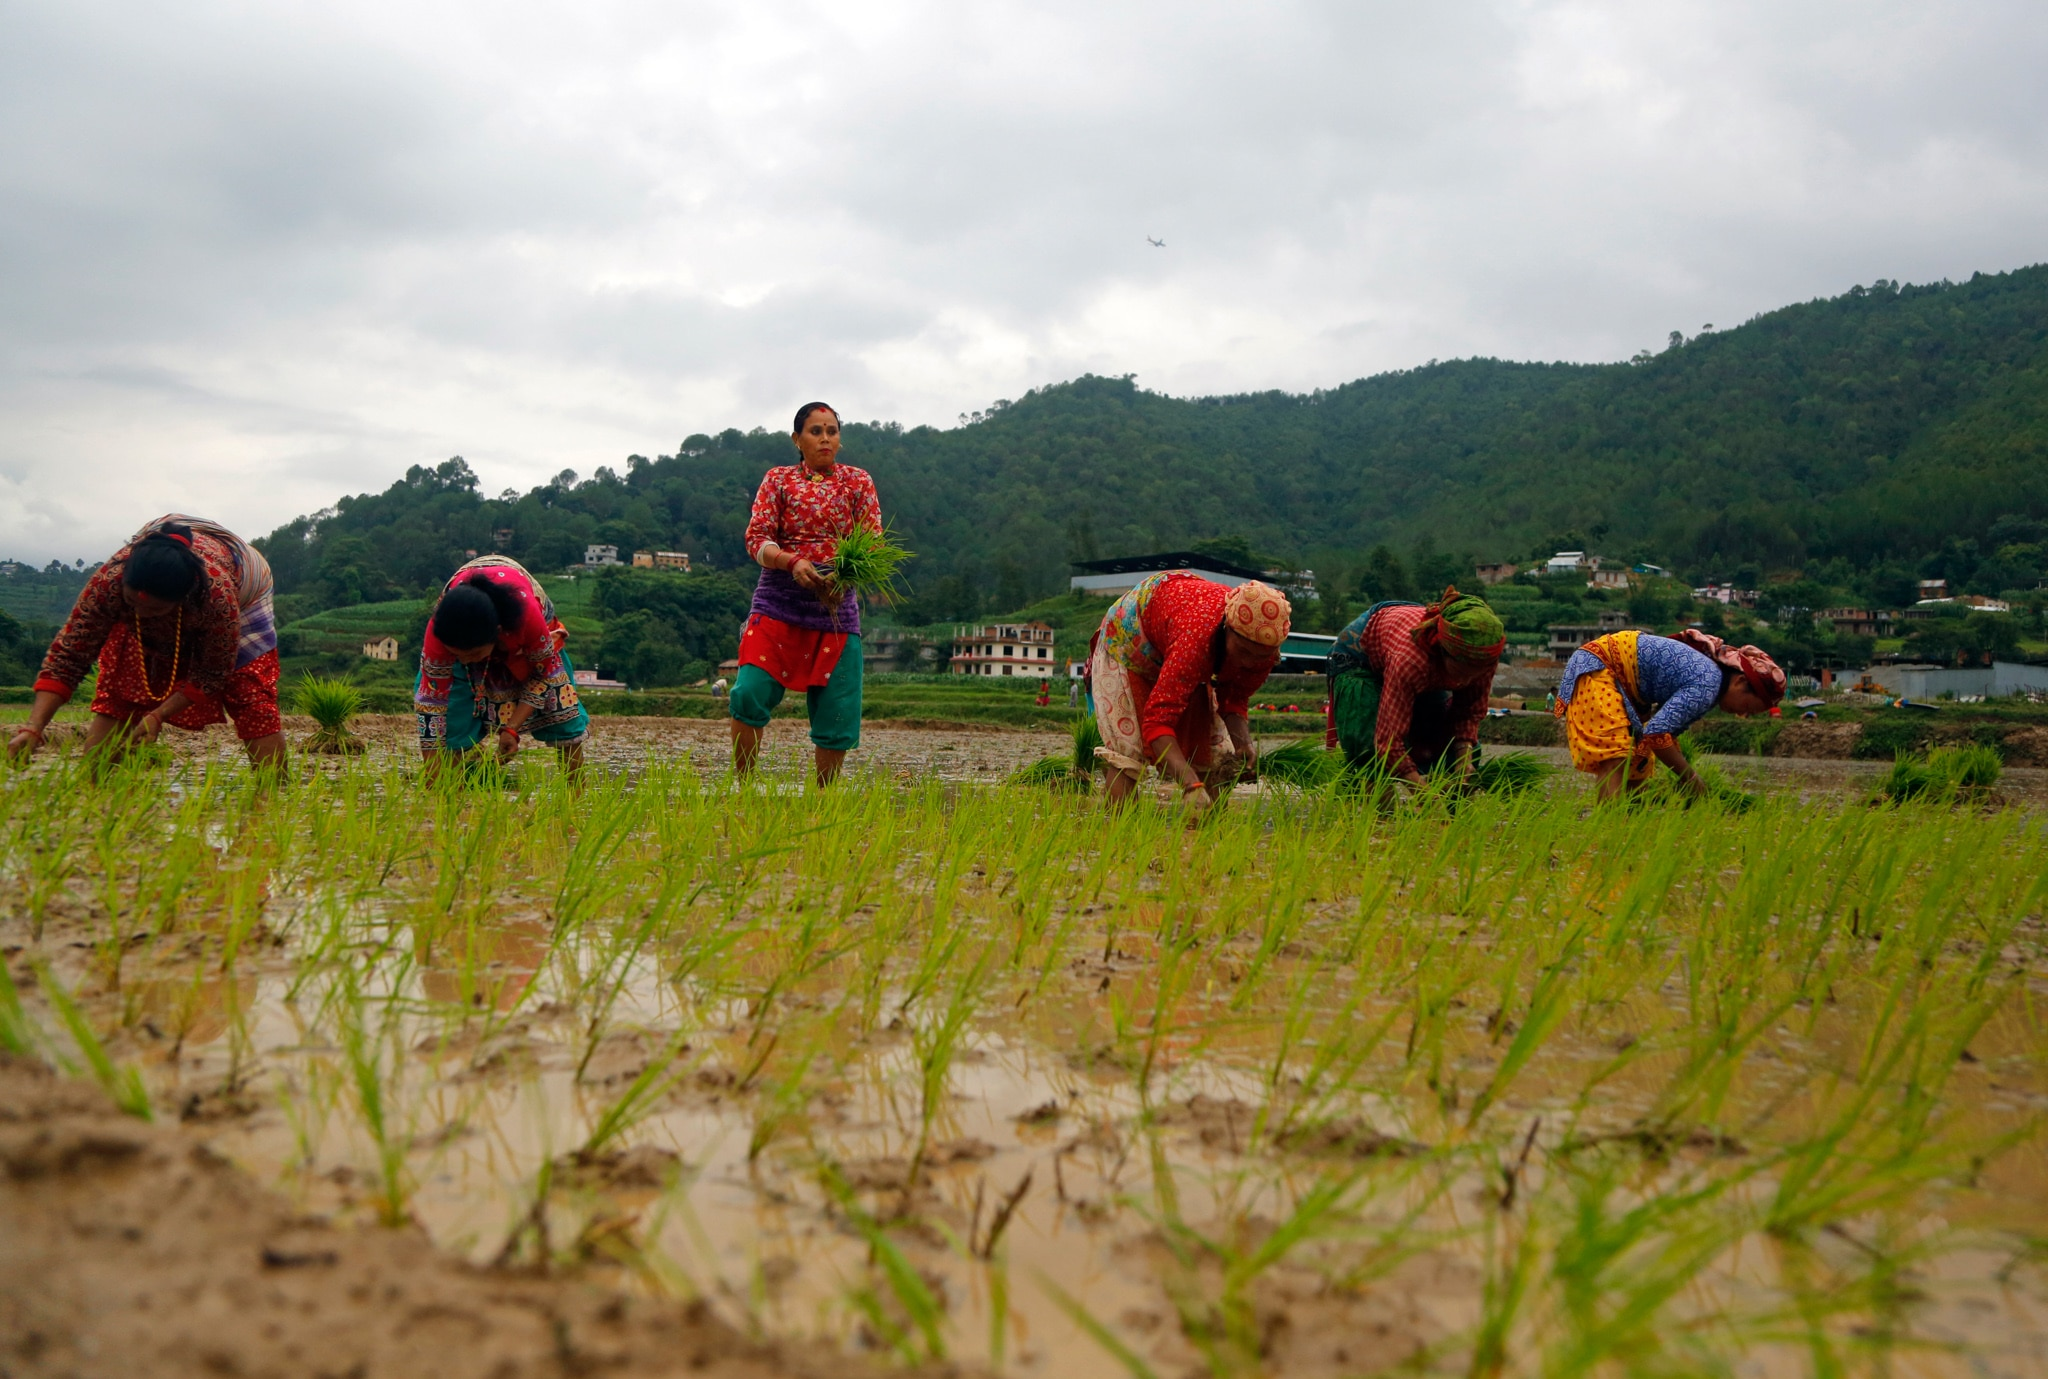 One person standing and holding plants as five others bend over the ground in a wet field (© Niranjan Shrestha/AP Images)